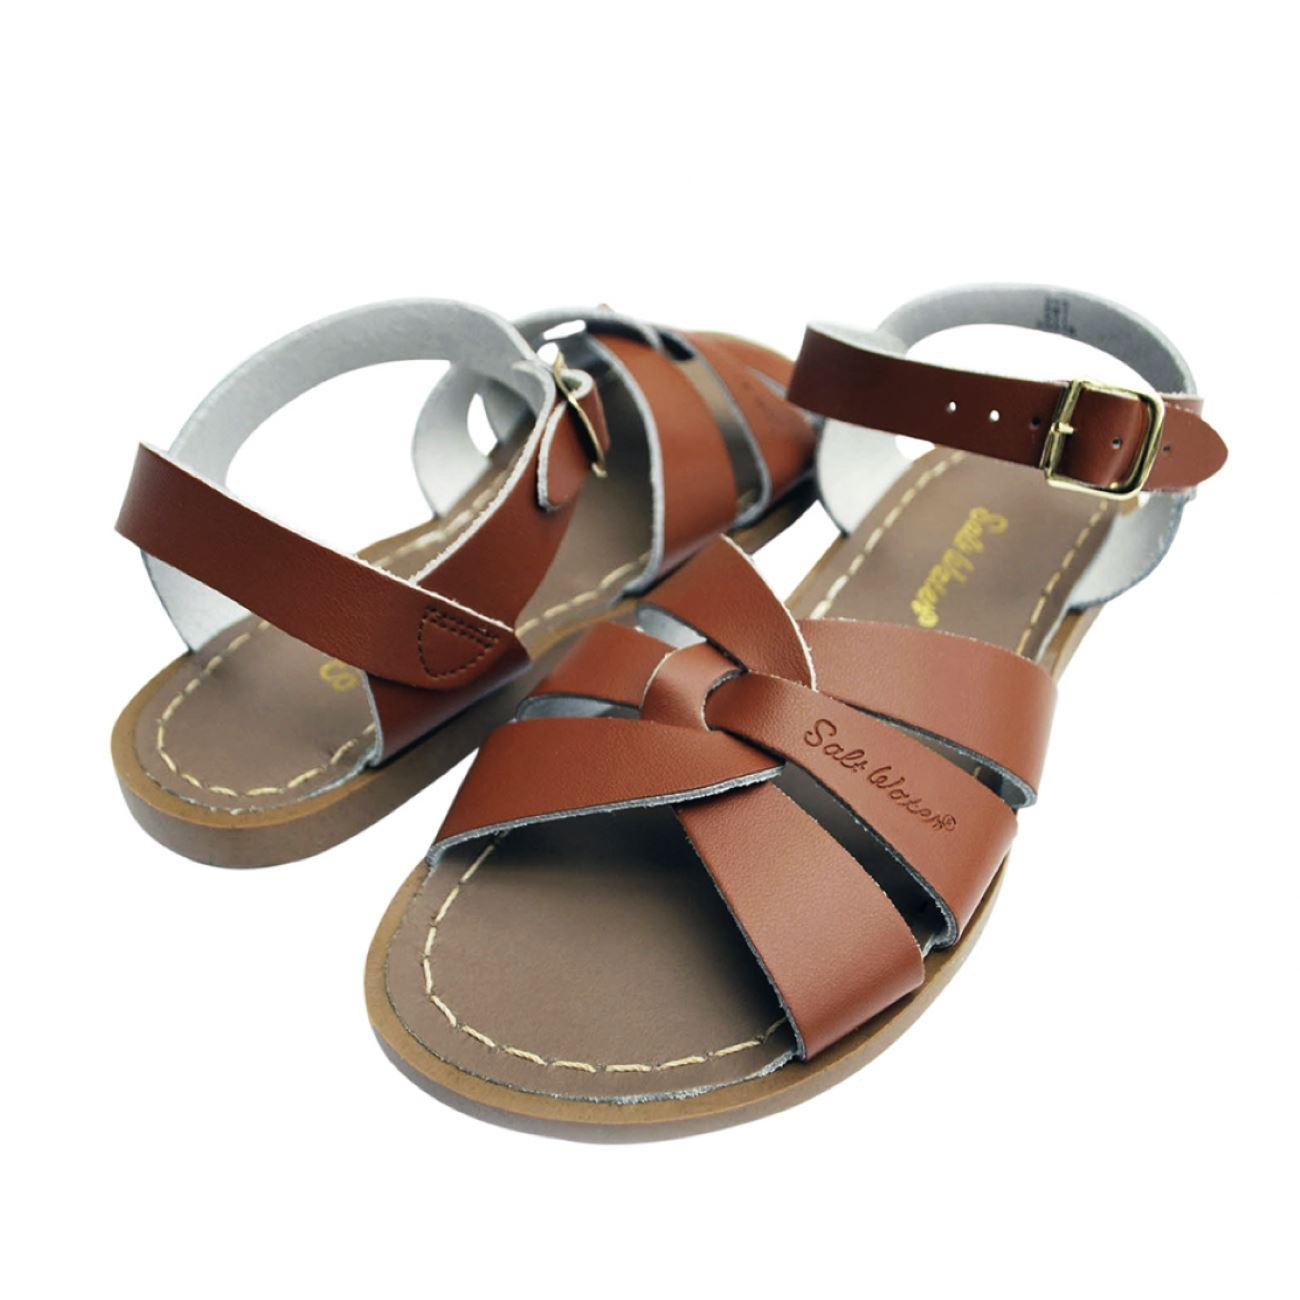 Salt Water Sandals, Original, Youth, Tan Sandals Salt Water Sandals Tan Y2